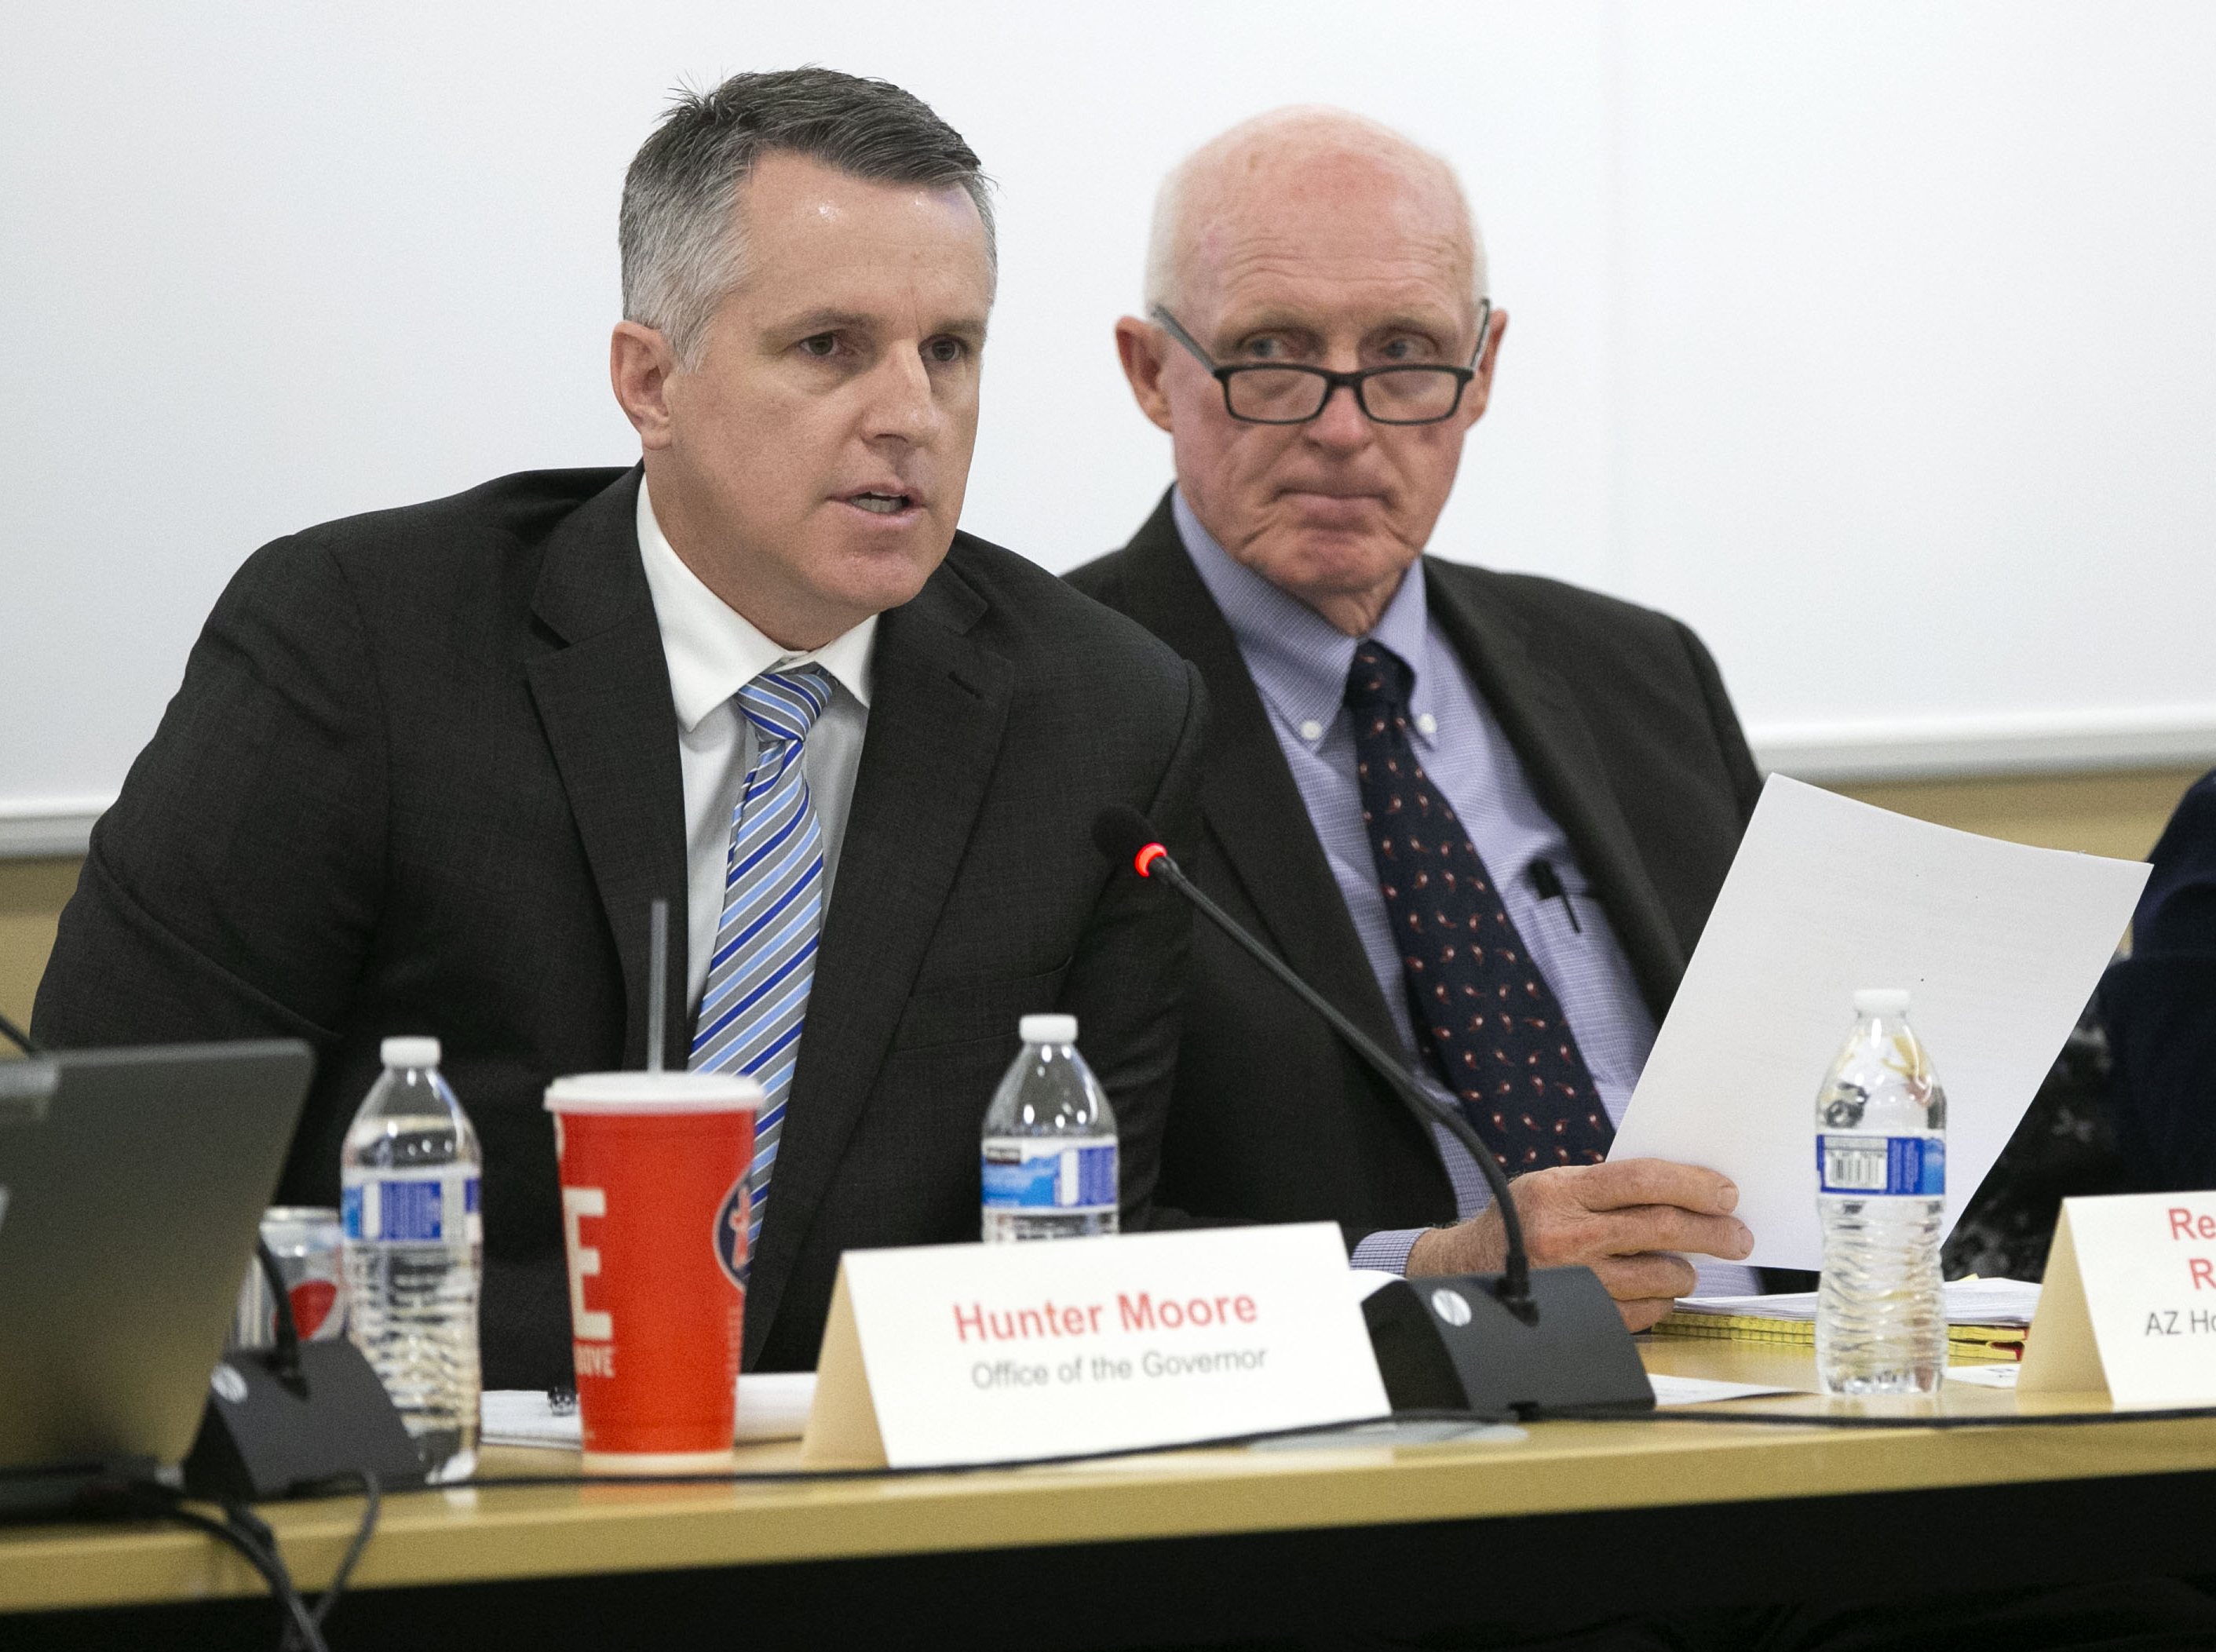 Hunter Moore, (left) of the Office of the Governor, speaks as Rep. Rusty Bowers, Arizona House Of Representatives District #25, listens during the Arizona Lower Basin Drought Contingency Plan Steering Committee meeting to work on a drought contingency plan for the Colorado River at Central Arizona Project headquarters in Phoenix on November 29, 2018.